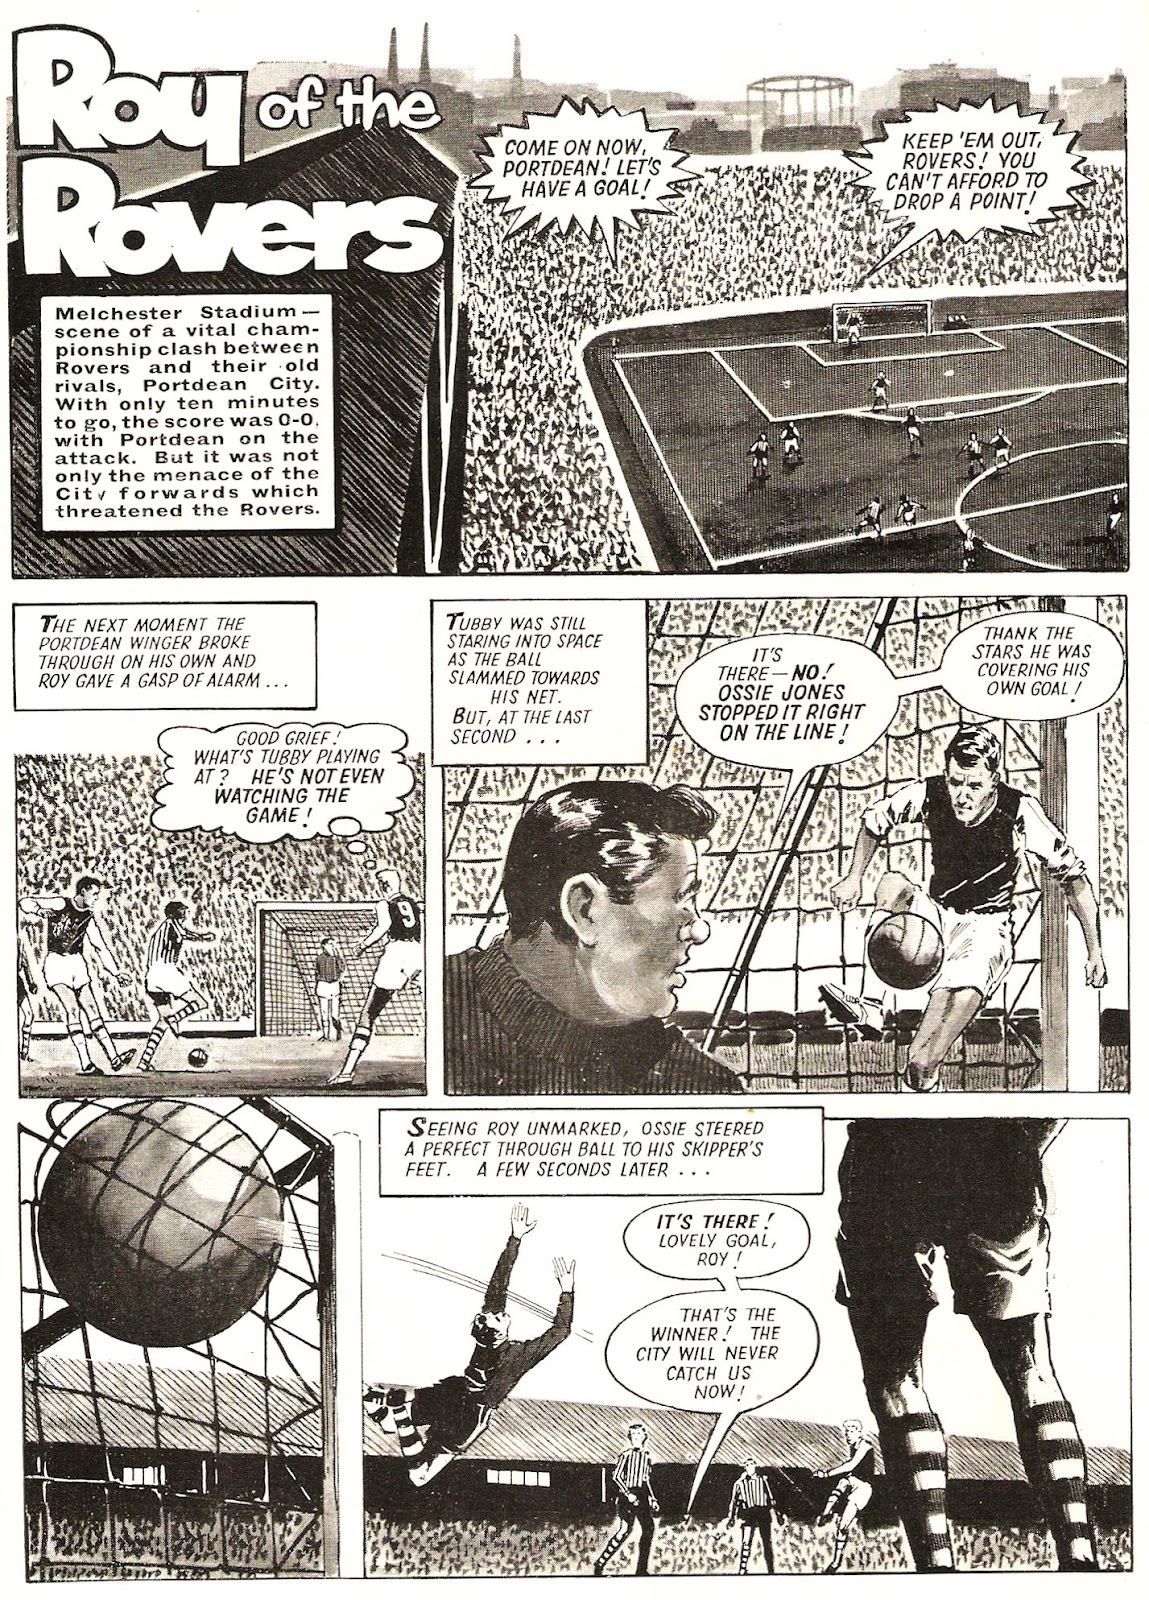 """The opening page of a """"Roy of the Rovers"""" strip drawn by Paul Trevillion for the 1965 Tiger Annual"""